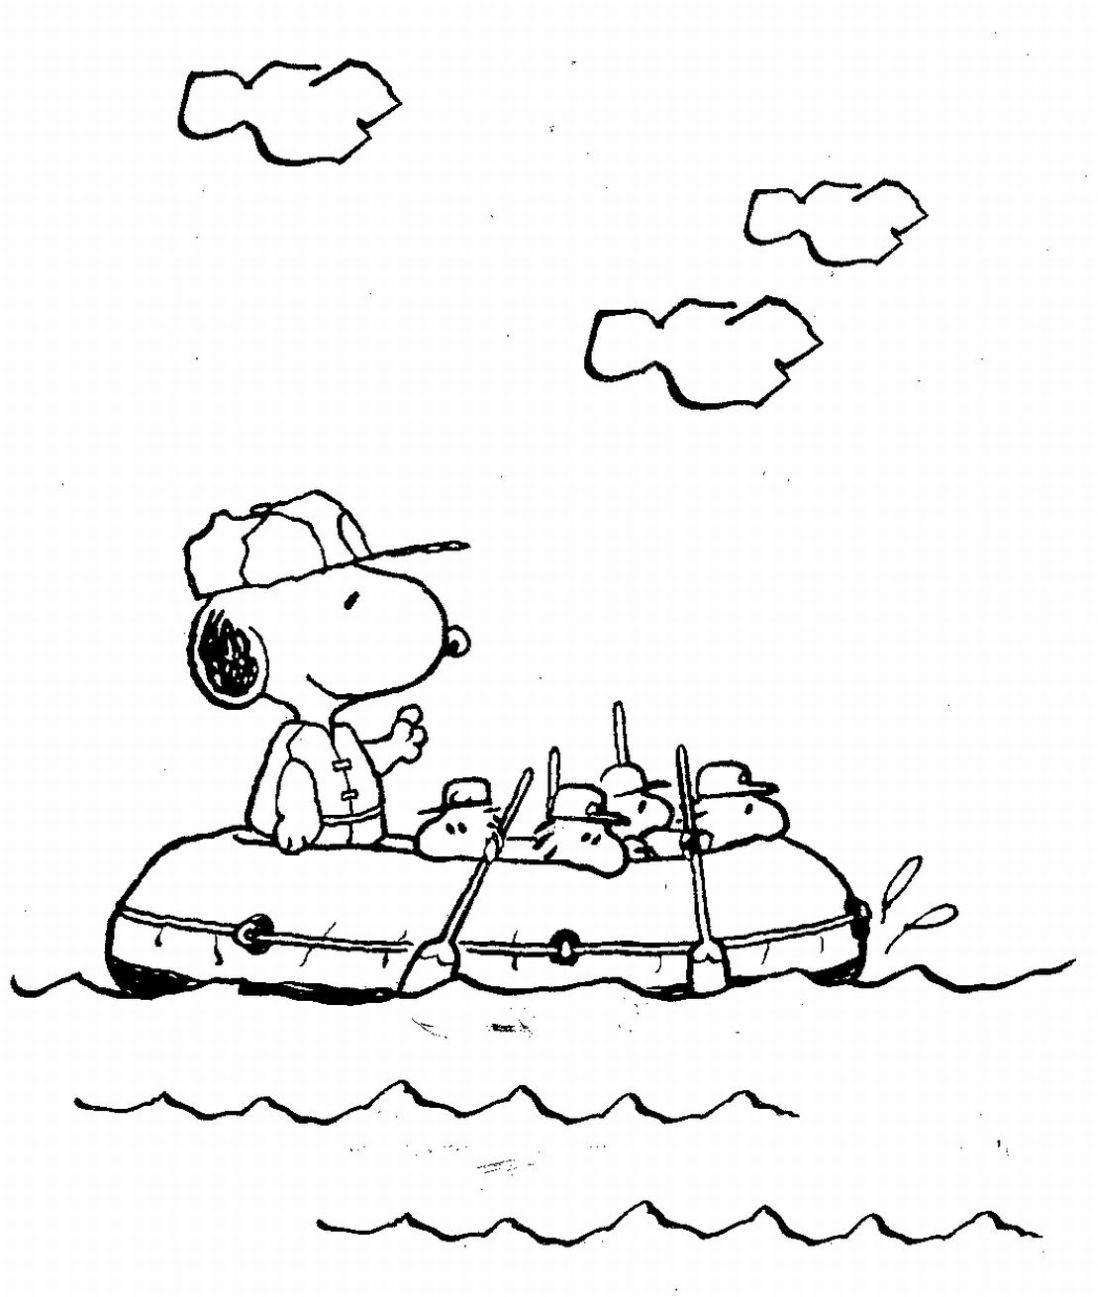 Snoopy the Dog Coloring Pages